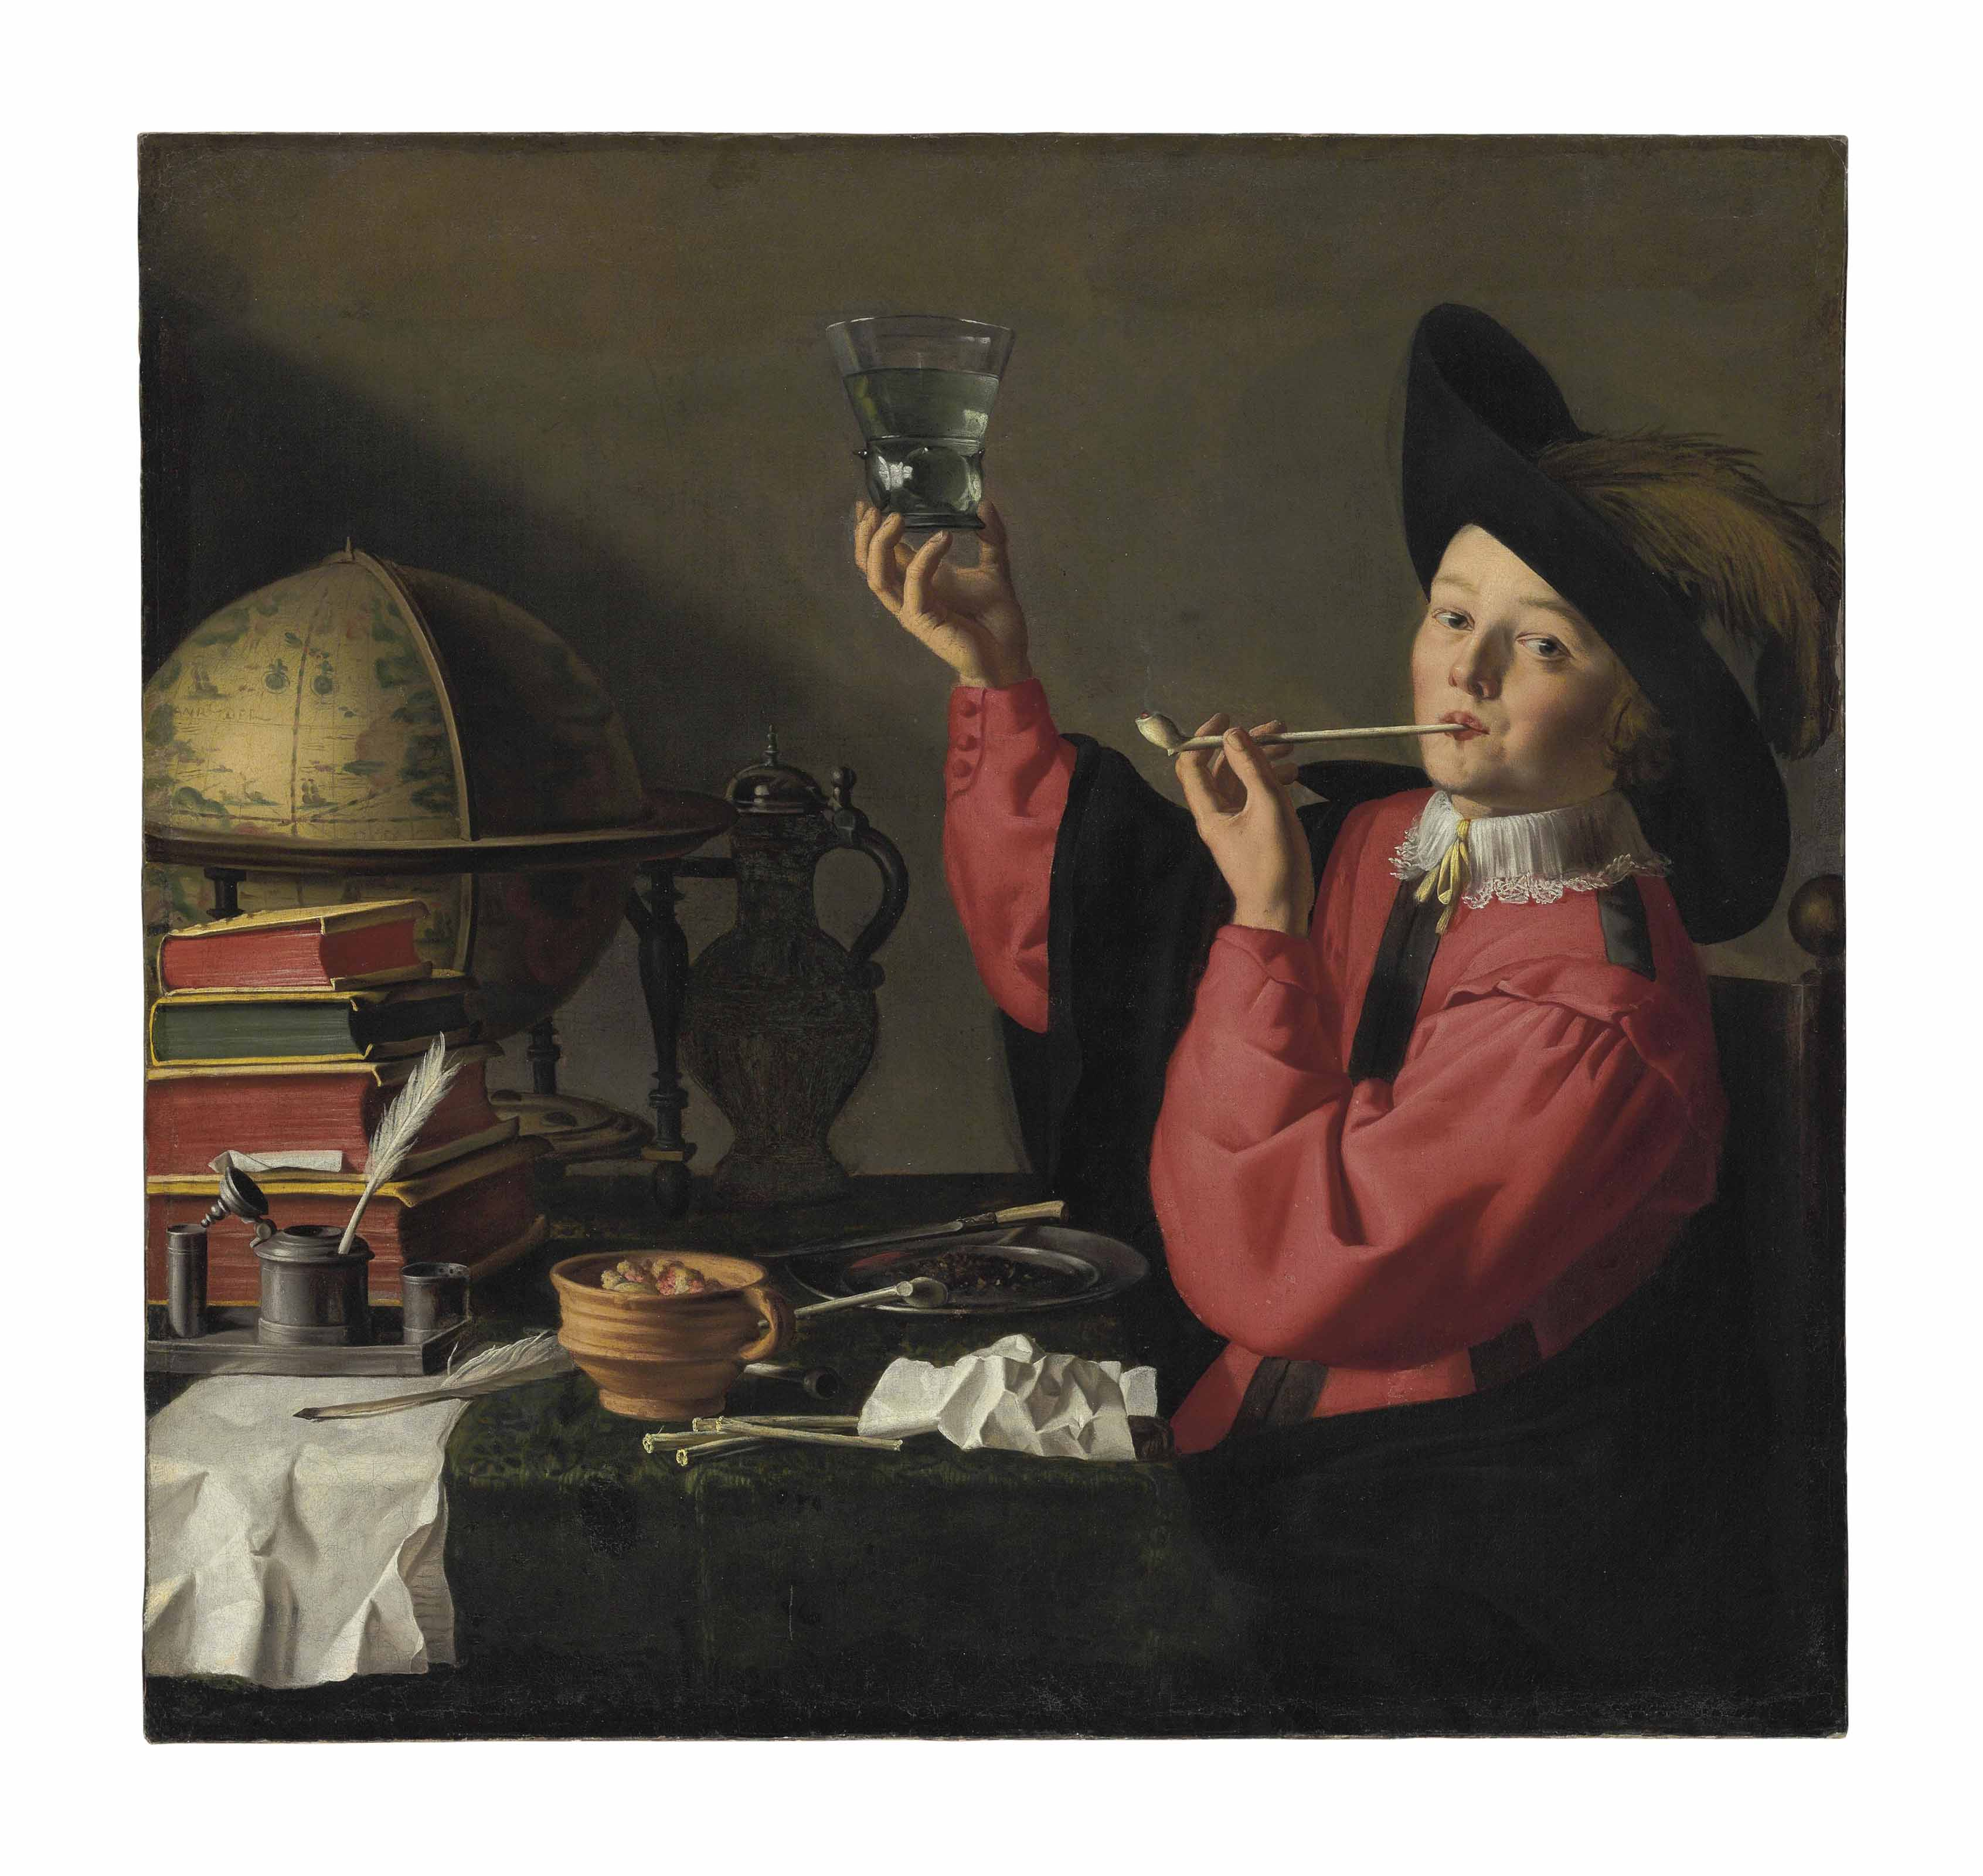 A gallant youth drinking and smoking at a table with a globe, books, and other objects